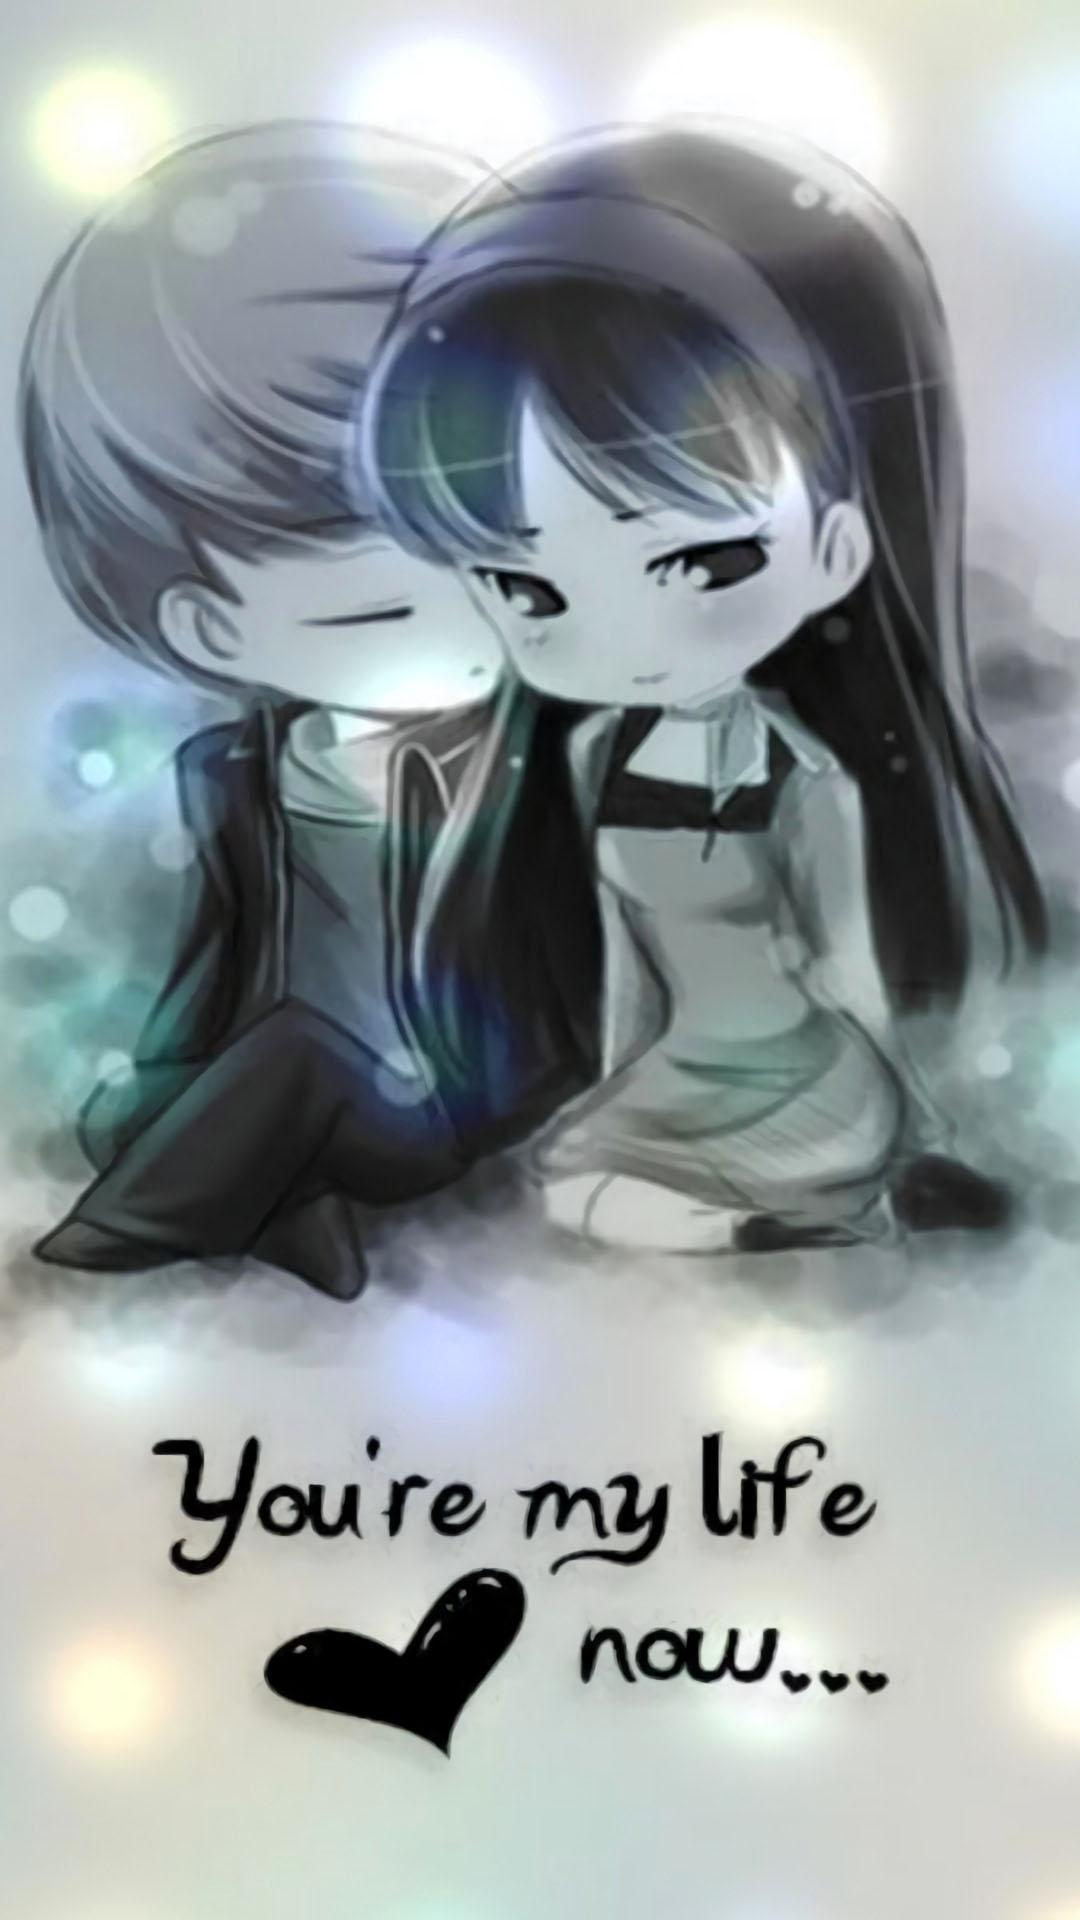 Ultra Hd Anime Love Wallpapers Wallpaper Cave